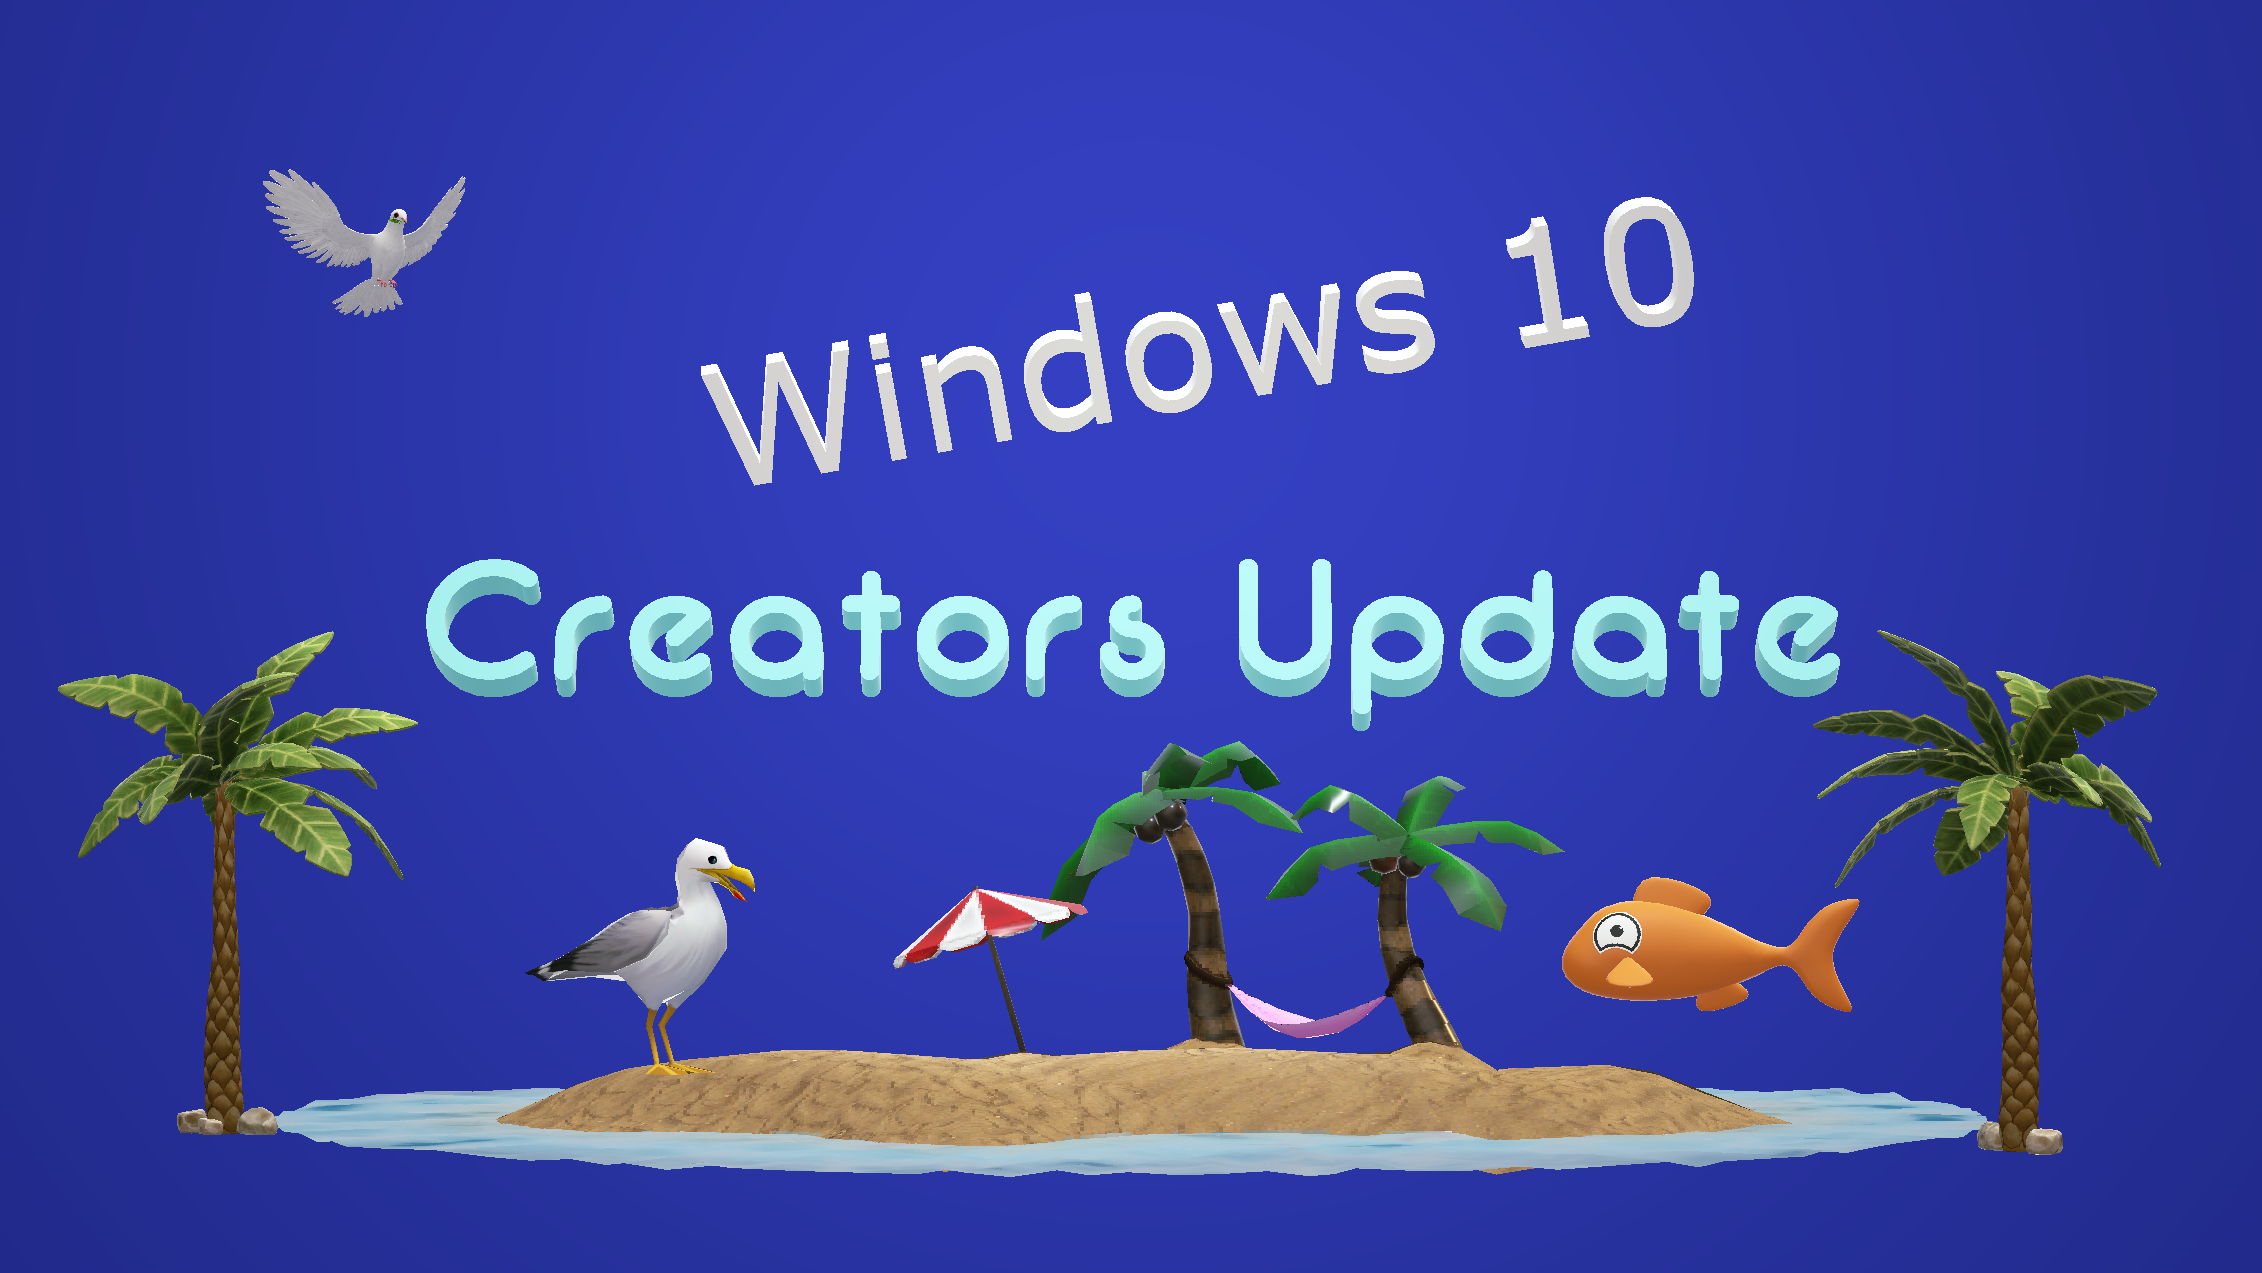 Here's The New Stuff From The Windows 10 Creators Update